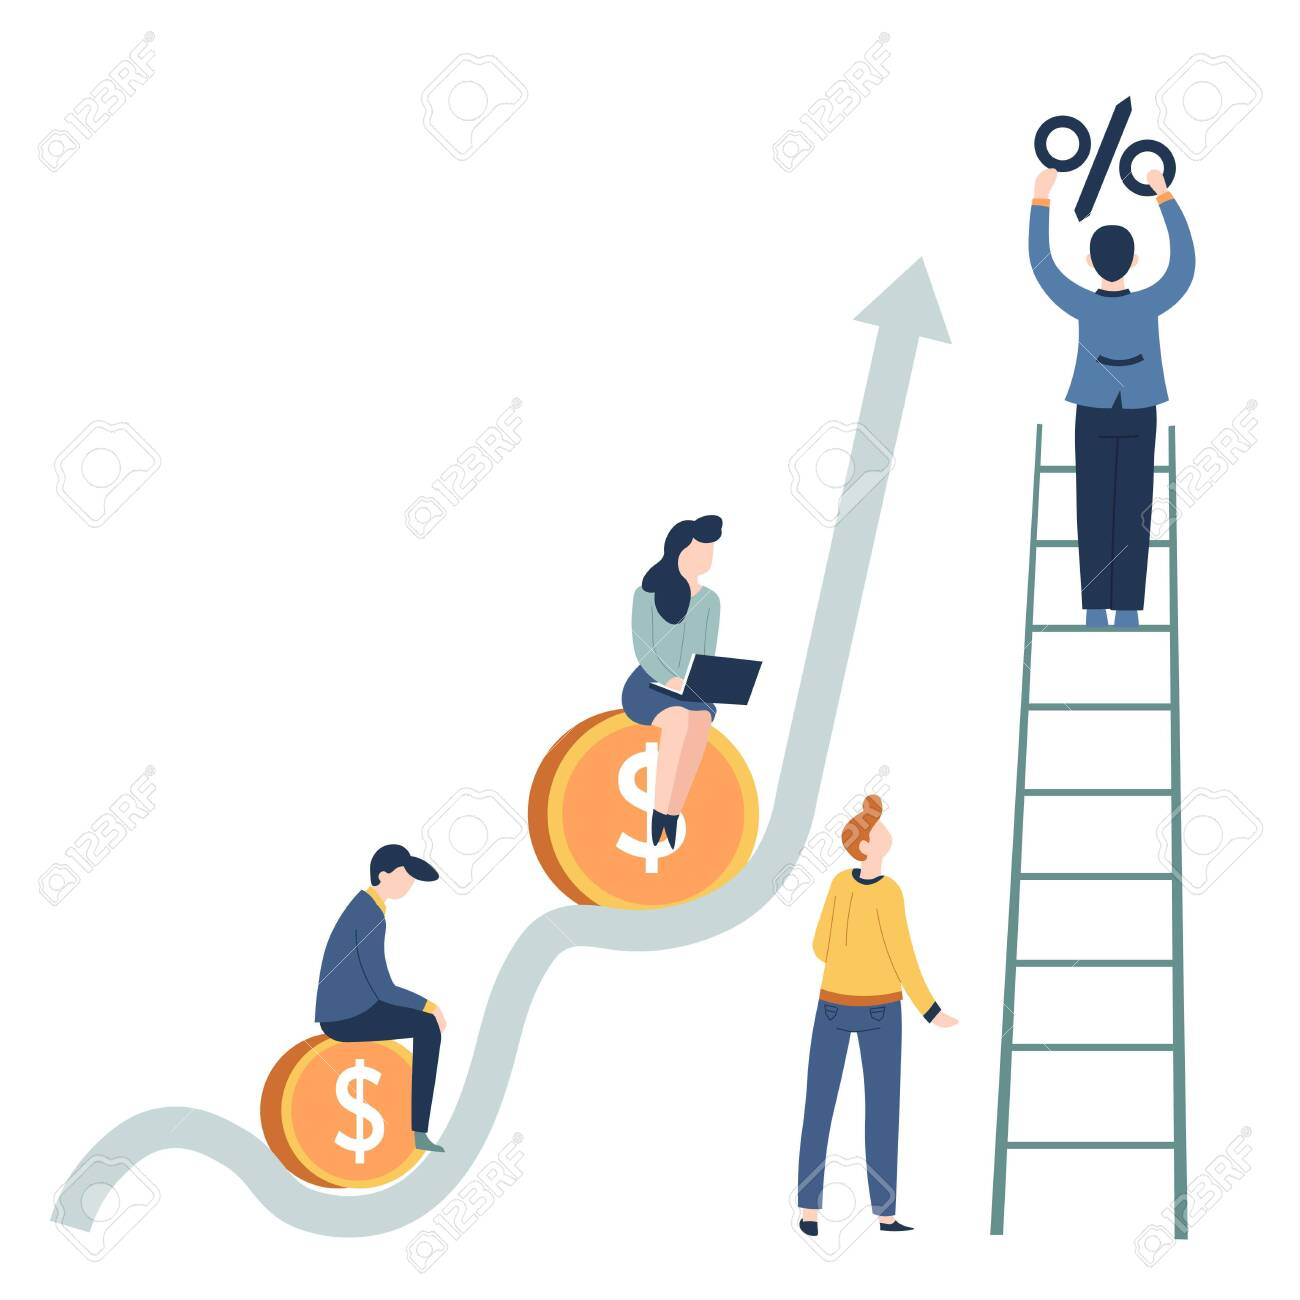 Profit growth business concept salary and career startup vector gold coins and graphic percentage increase man on ladder woman with laptop businessman and businesswoman entrepreneurs teamwork. - 123206735